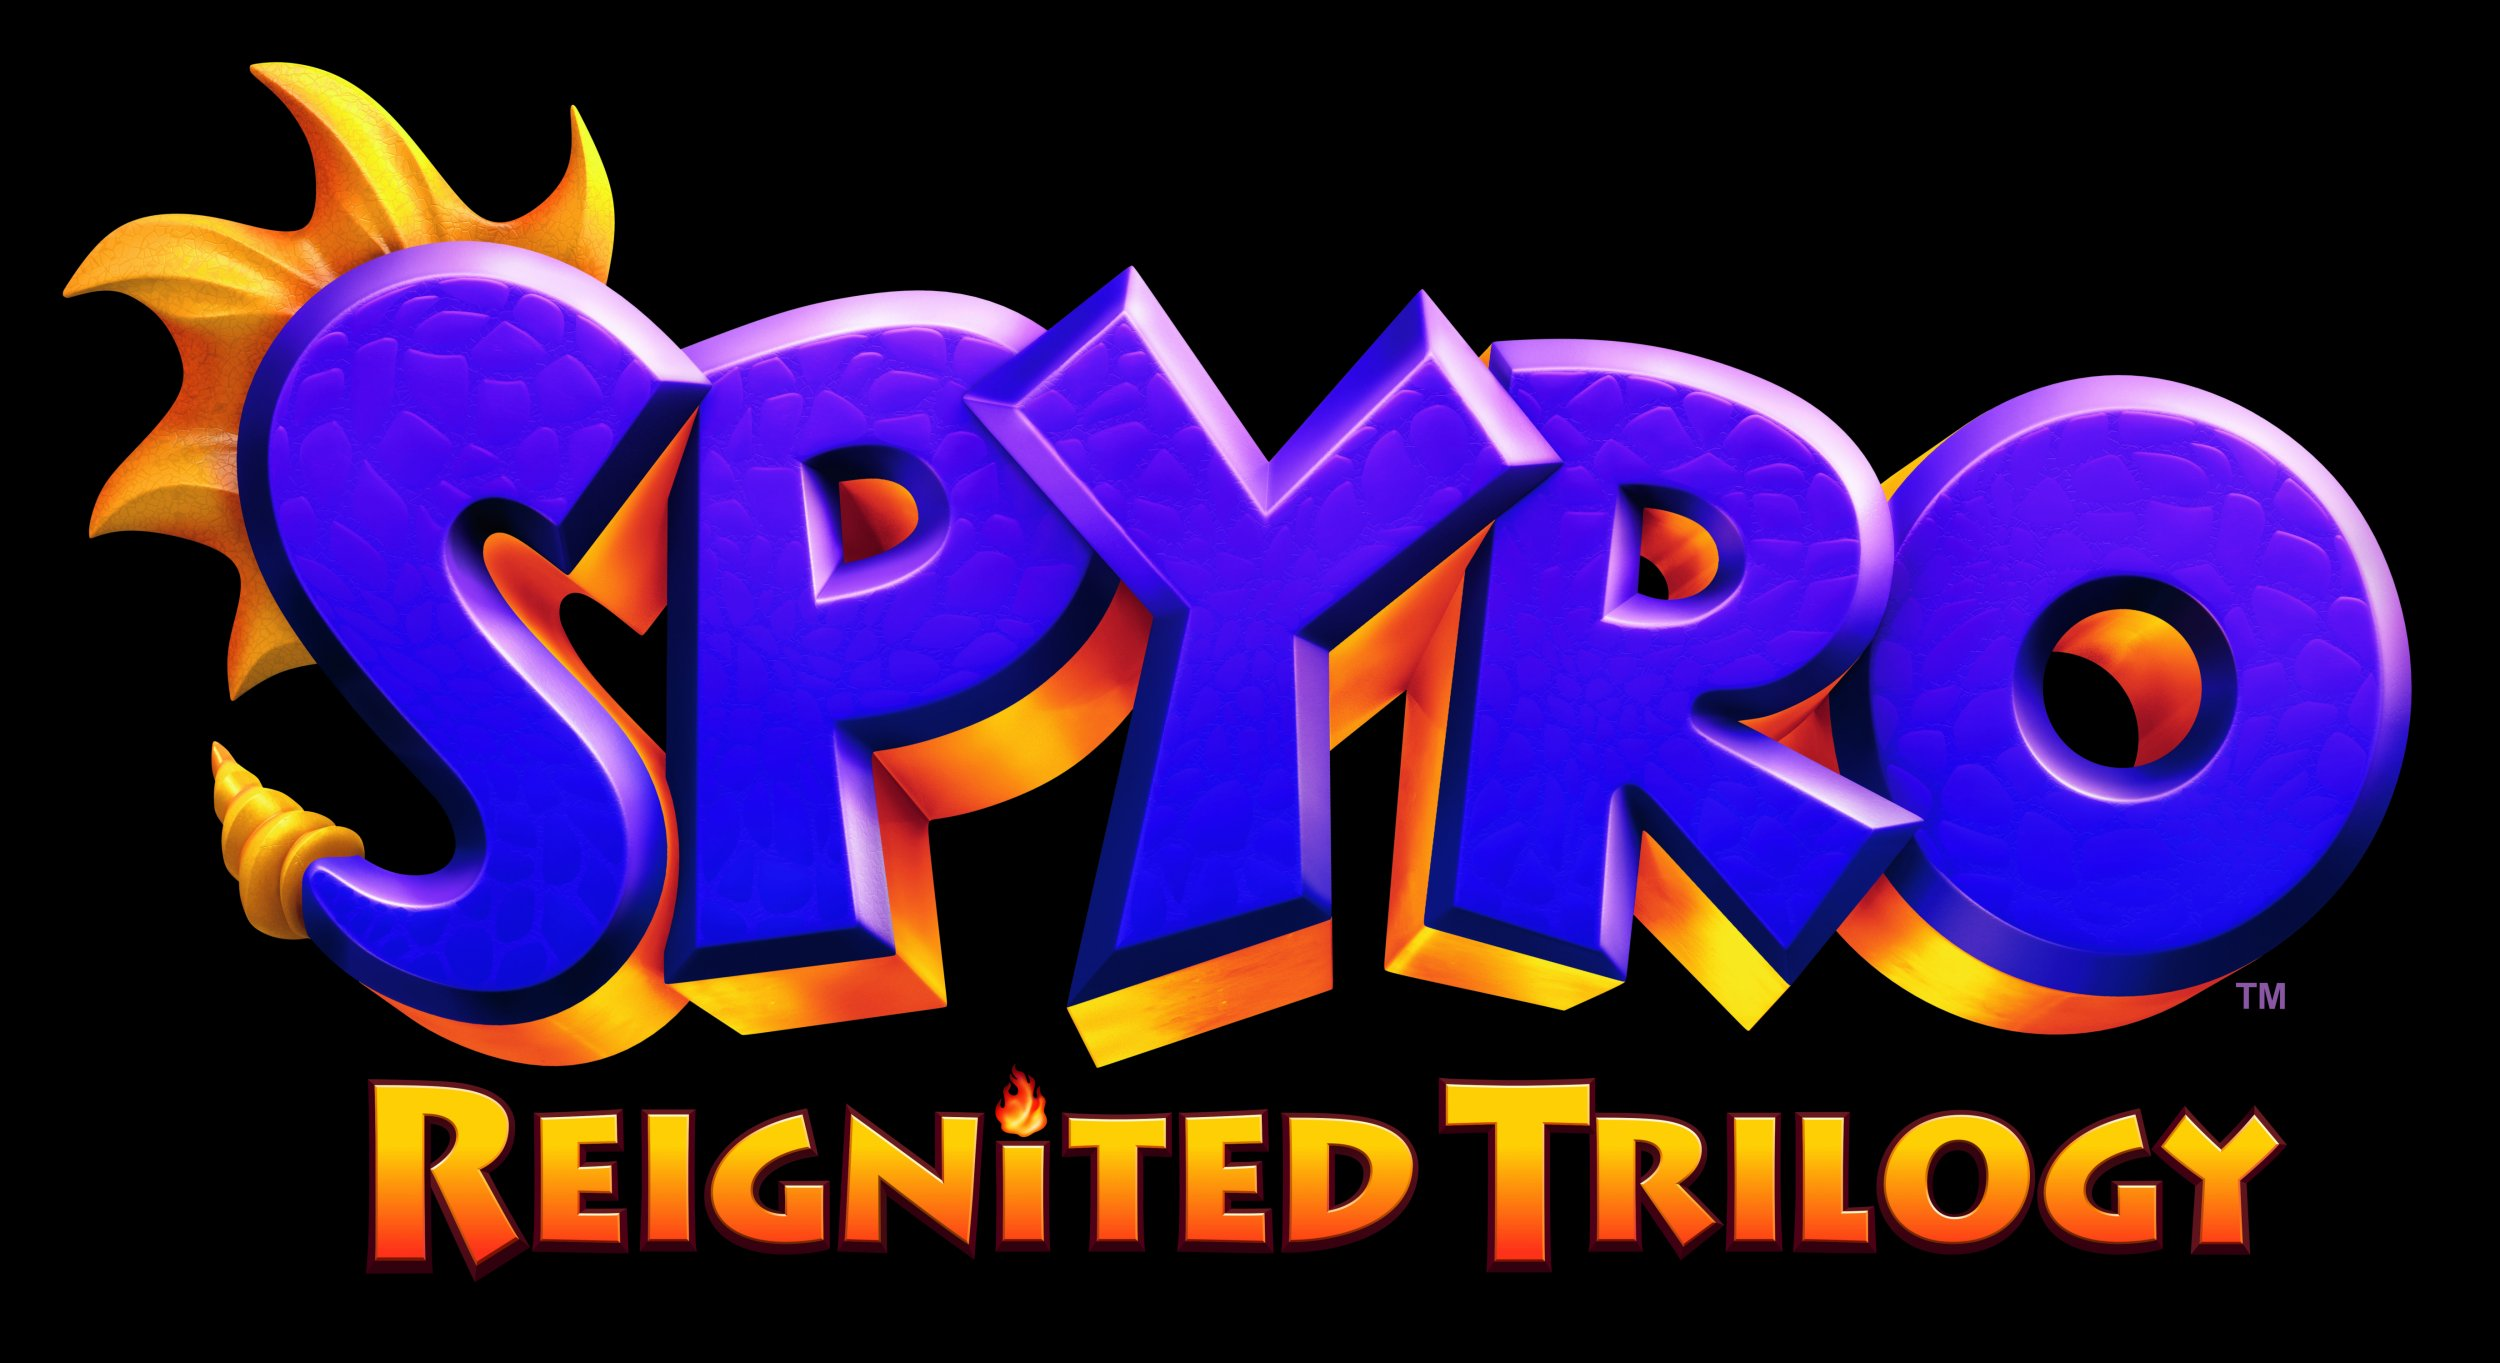 Spyro Reignited Trilogy PS4 Xbox One Release Date Announced